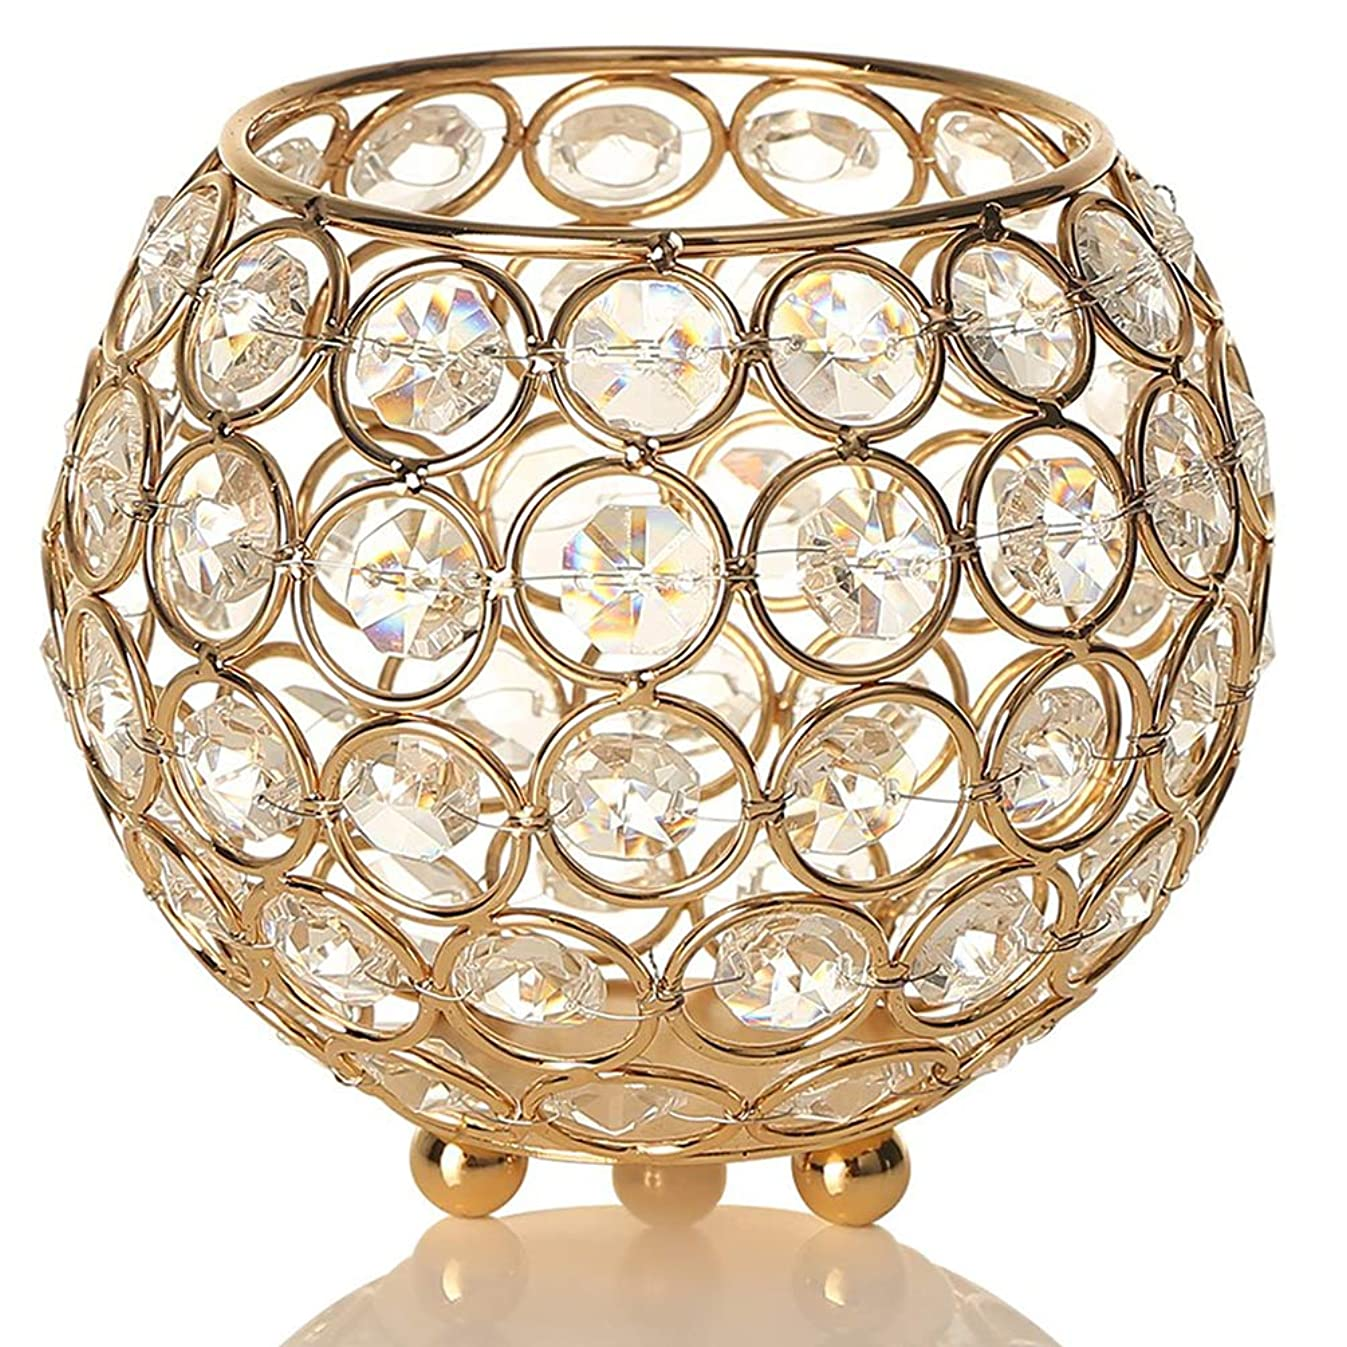 METCRY Crystal Candle Holders/Spherical Candle Holder for Coffee Table, Christmas, Valentine's Day, (4.8 inches,Gold)